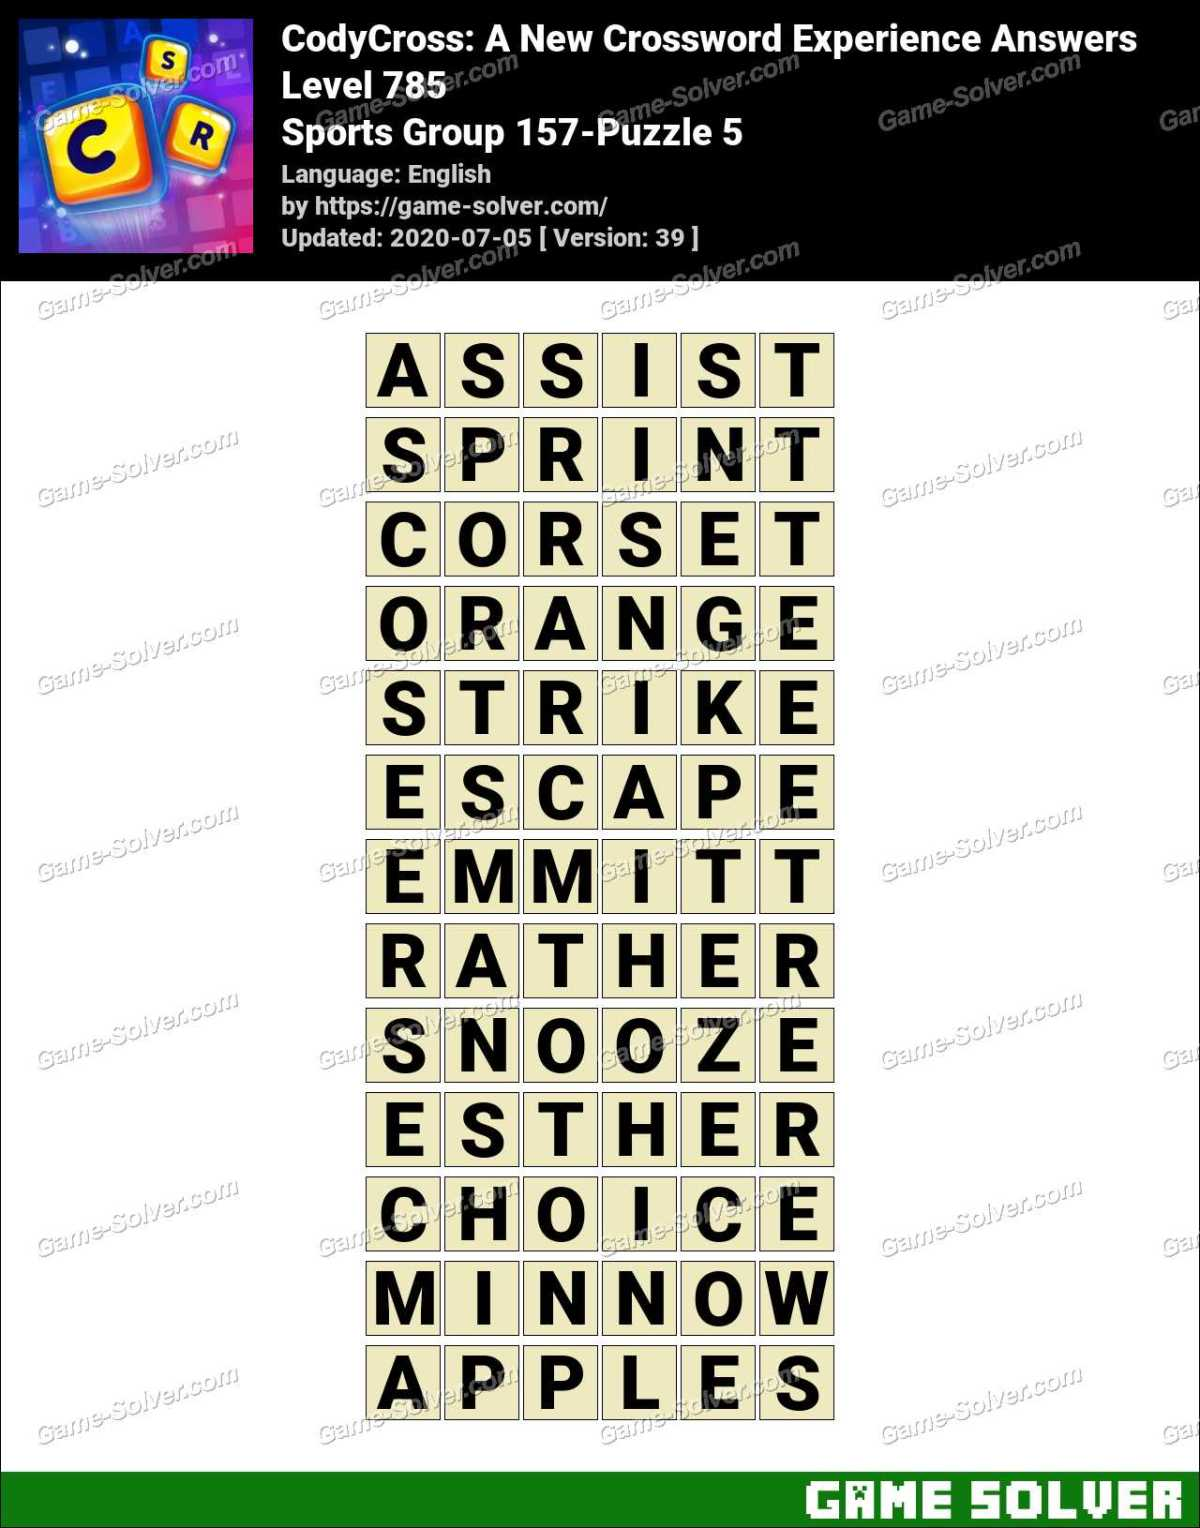 CodyCross Sports Group 157-Puzzle 5 Answers